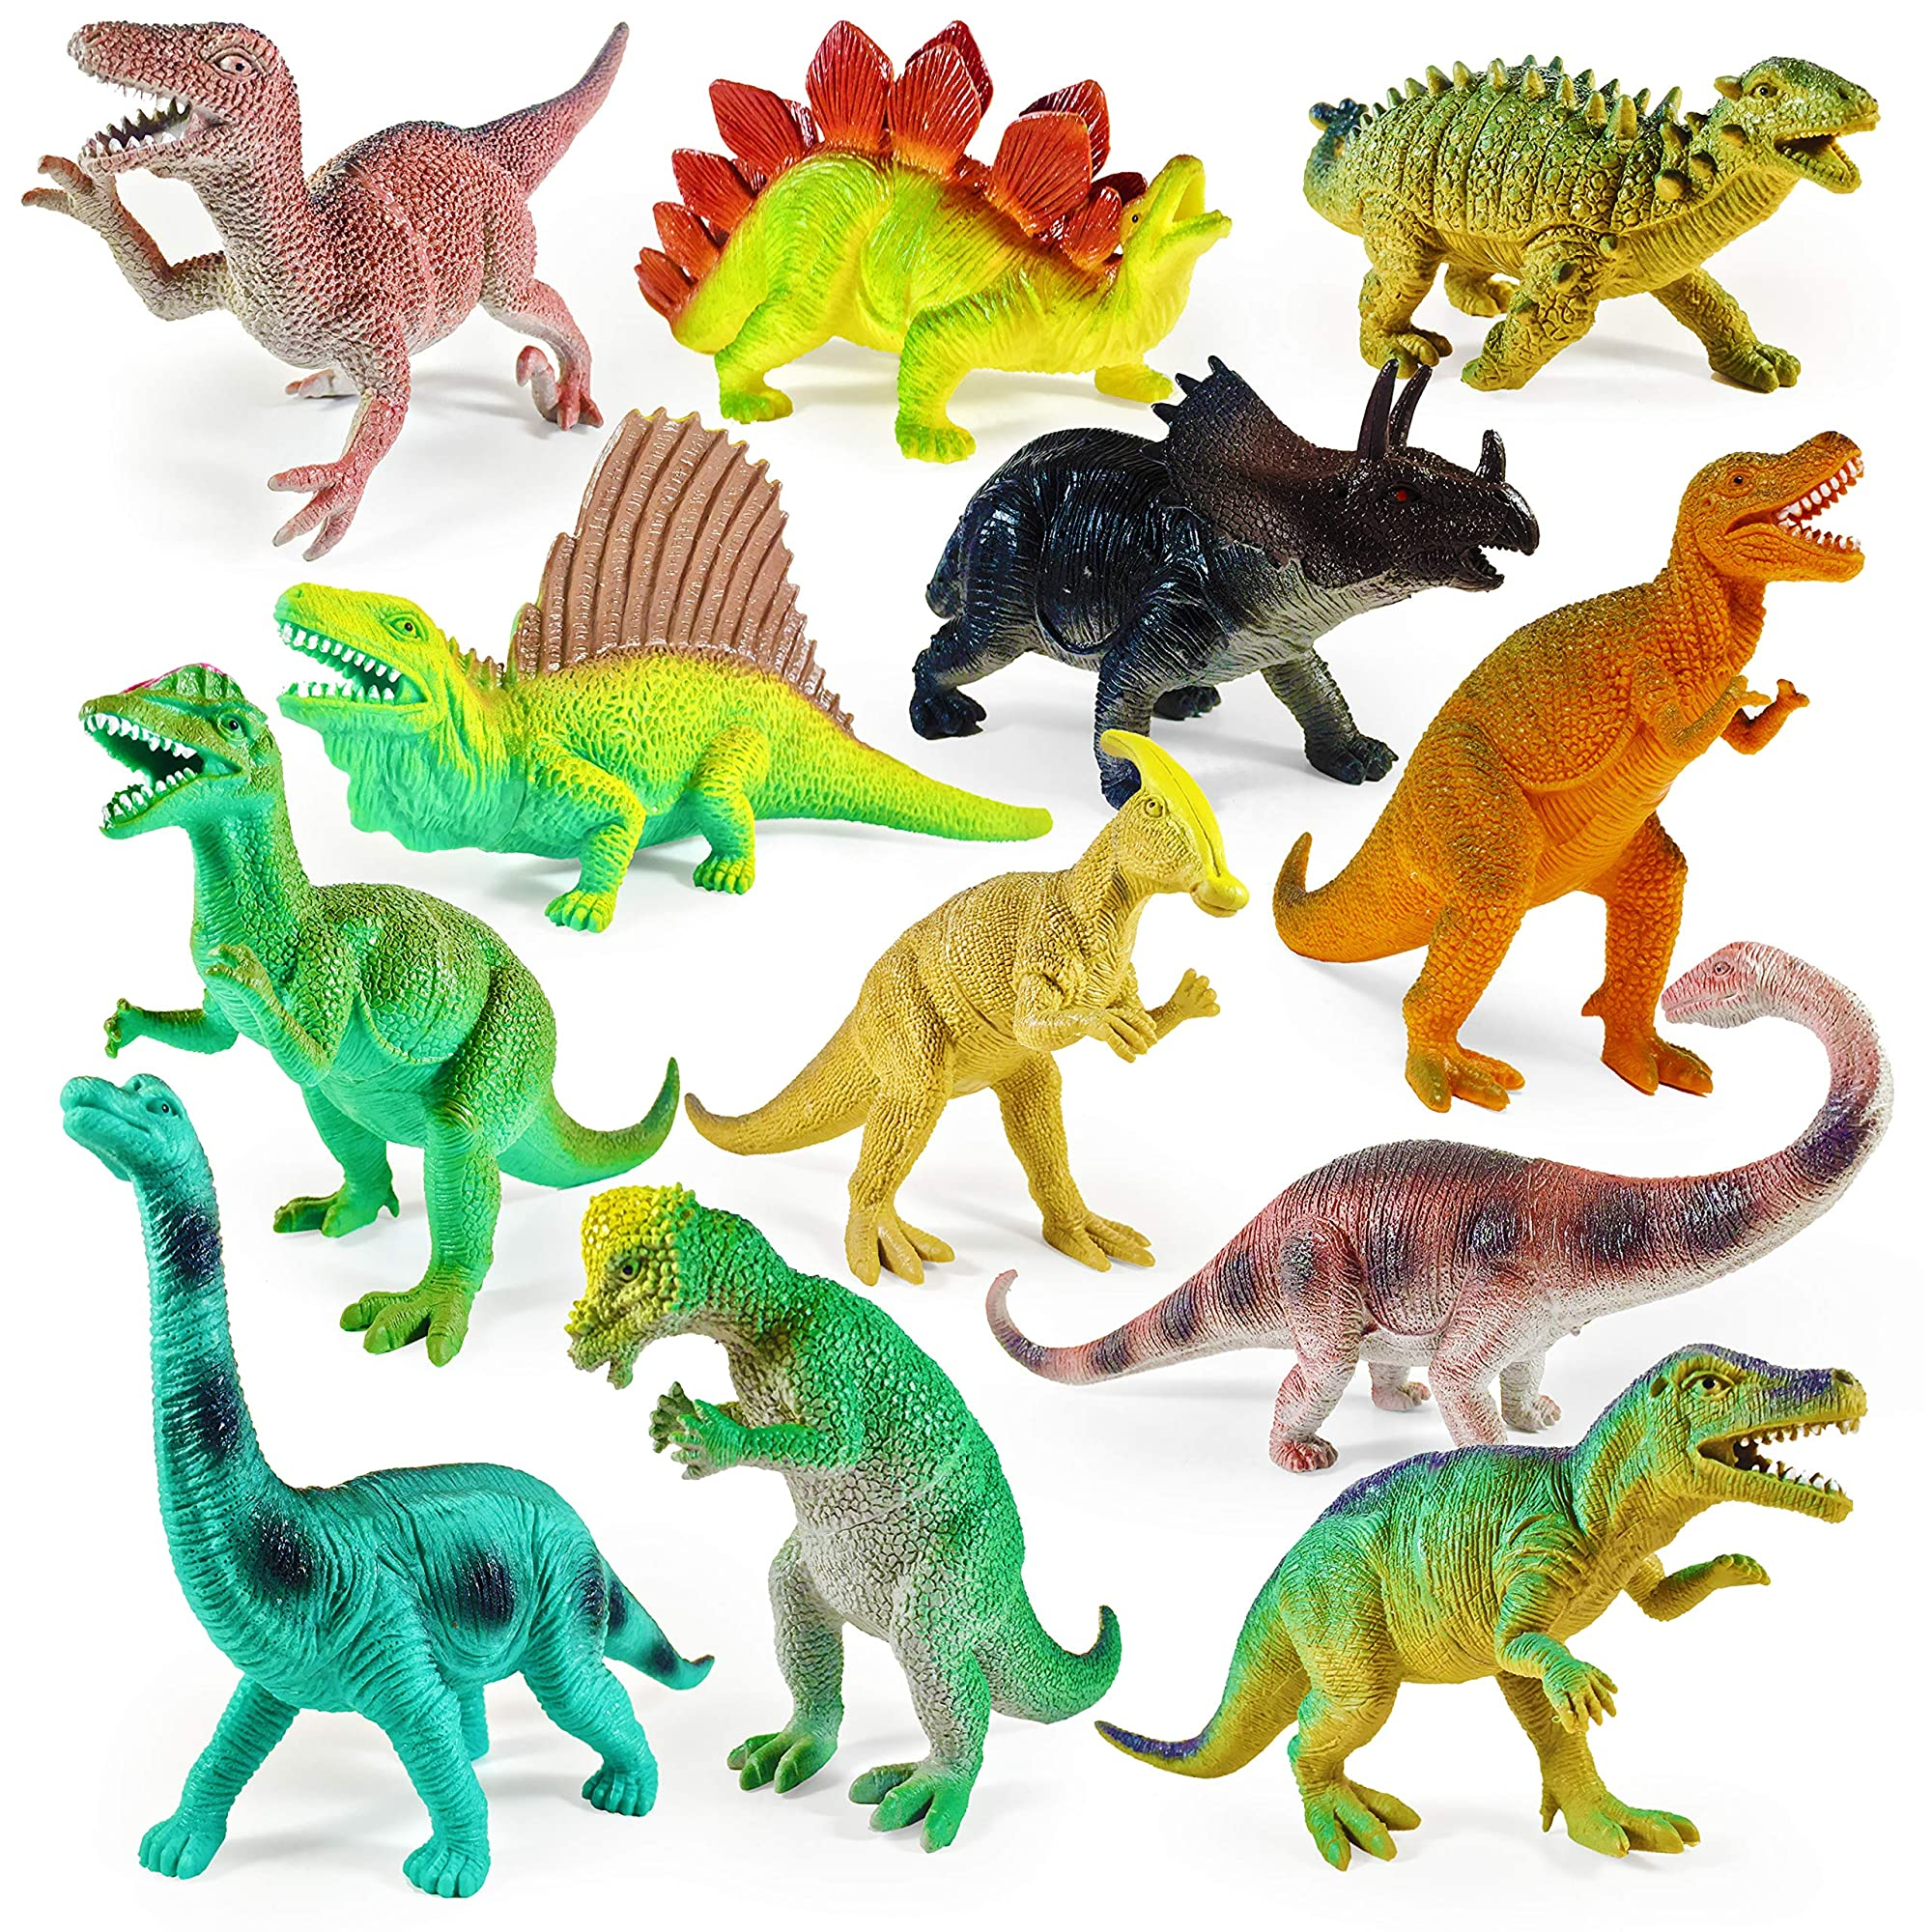 Realistic Dinosaur Figures Toy